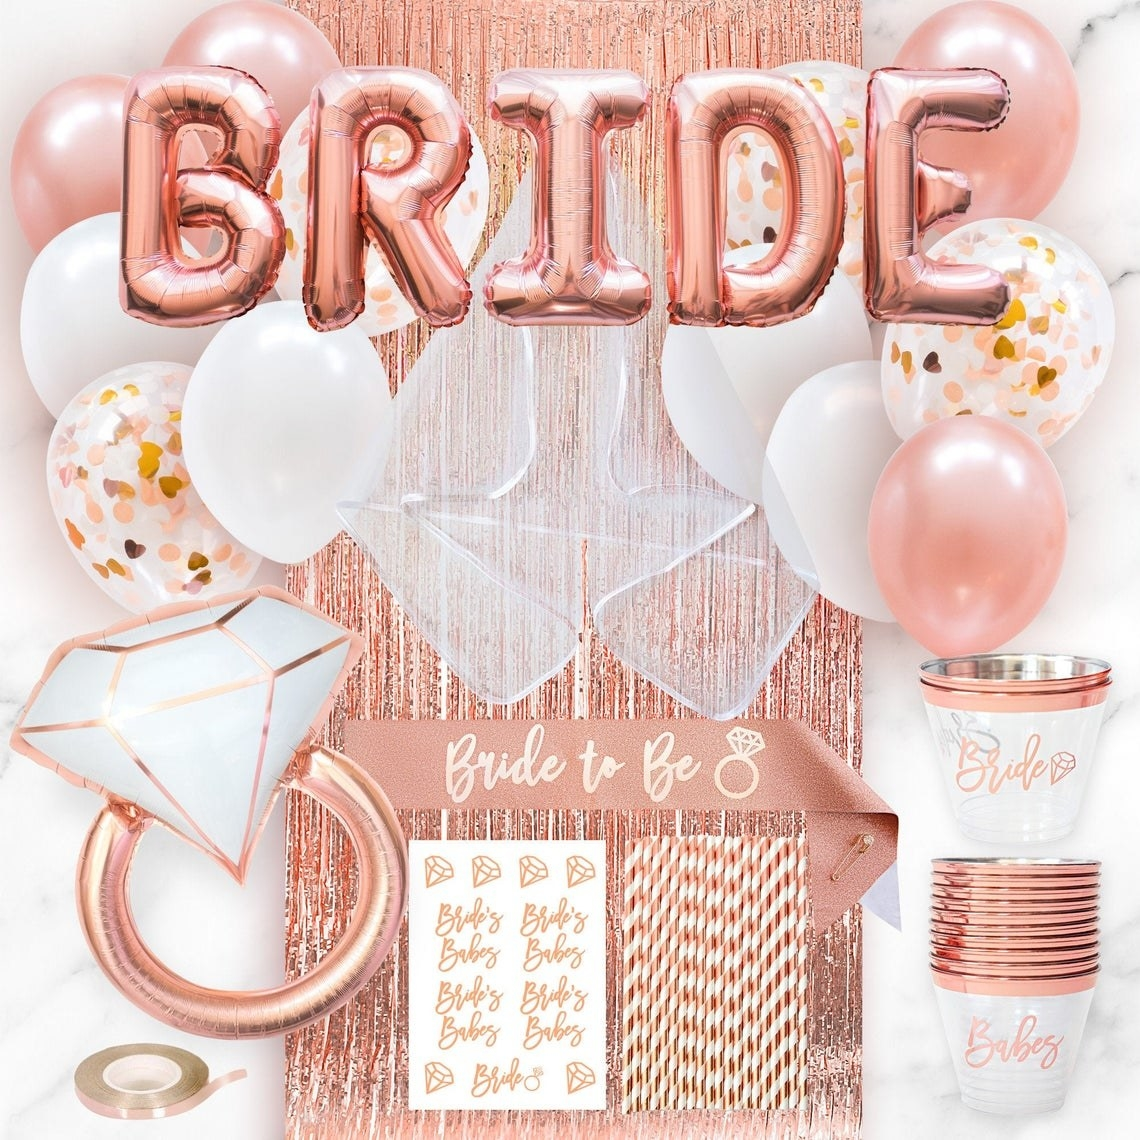 the rose gold-themed bridal decorations